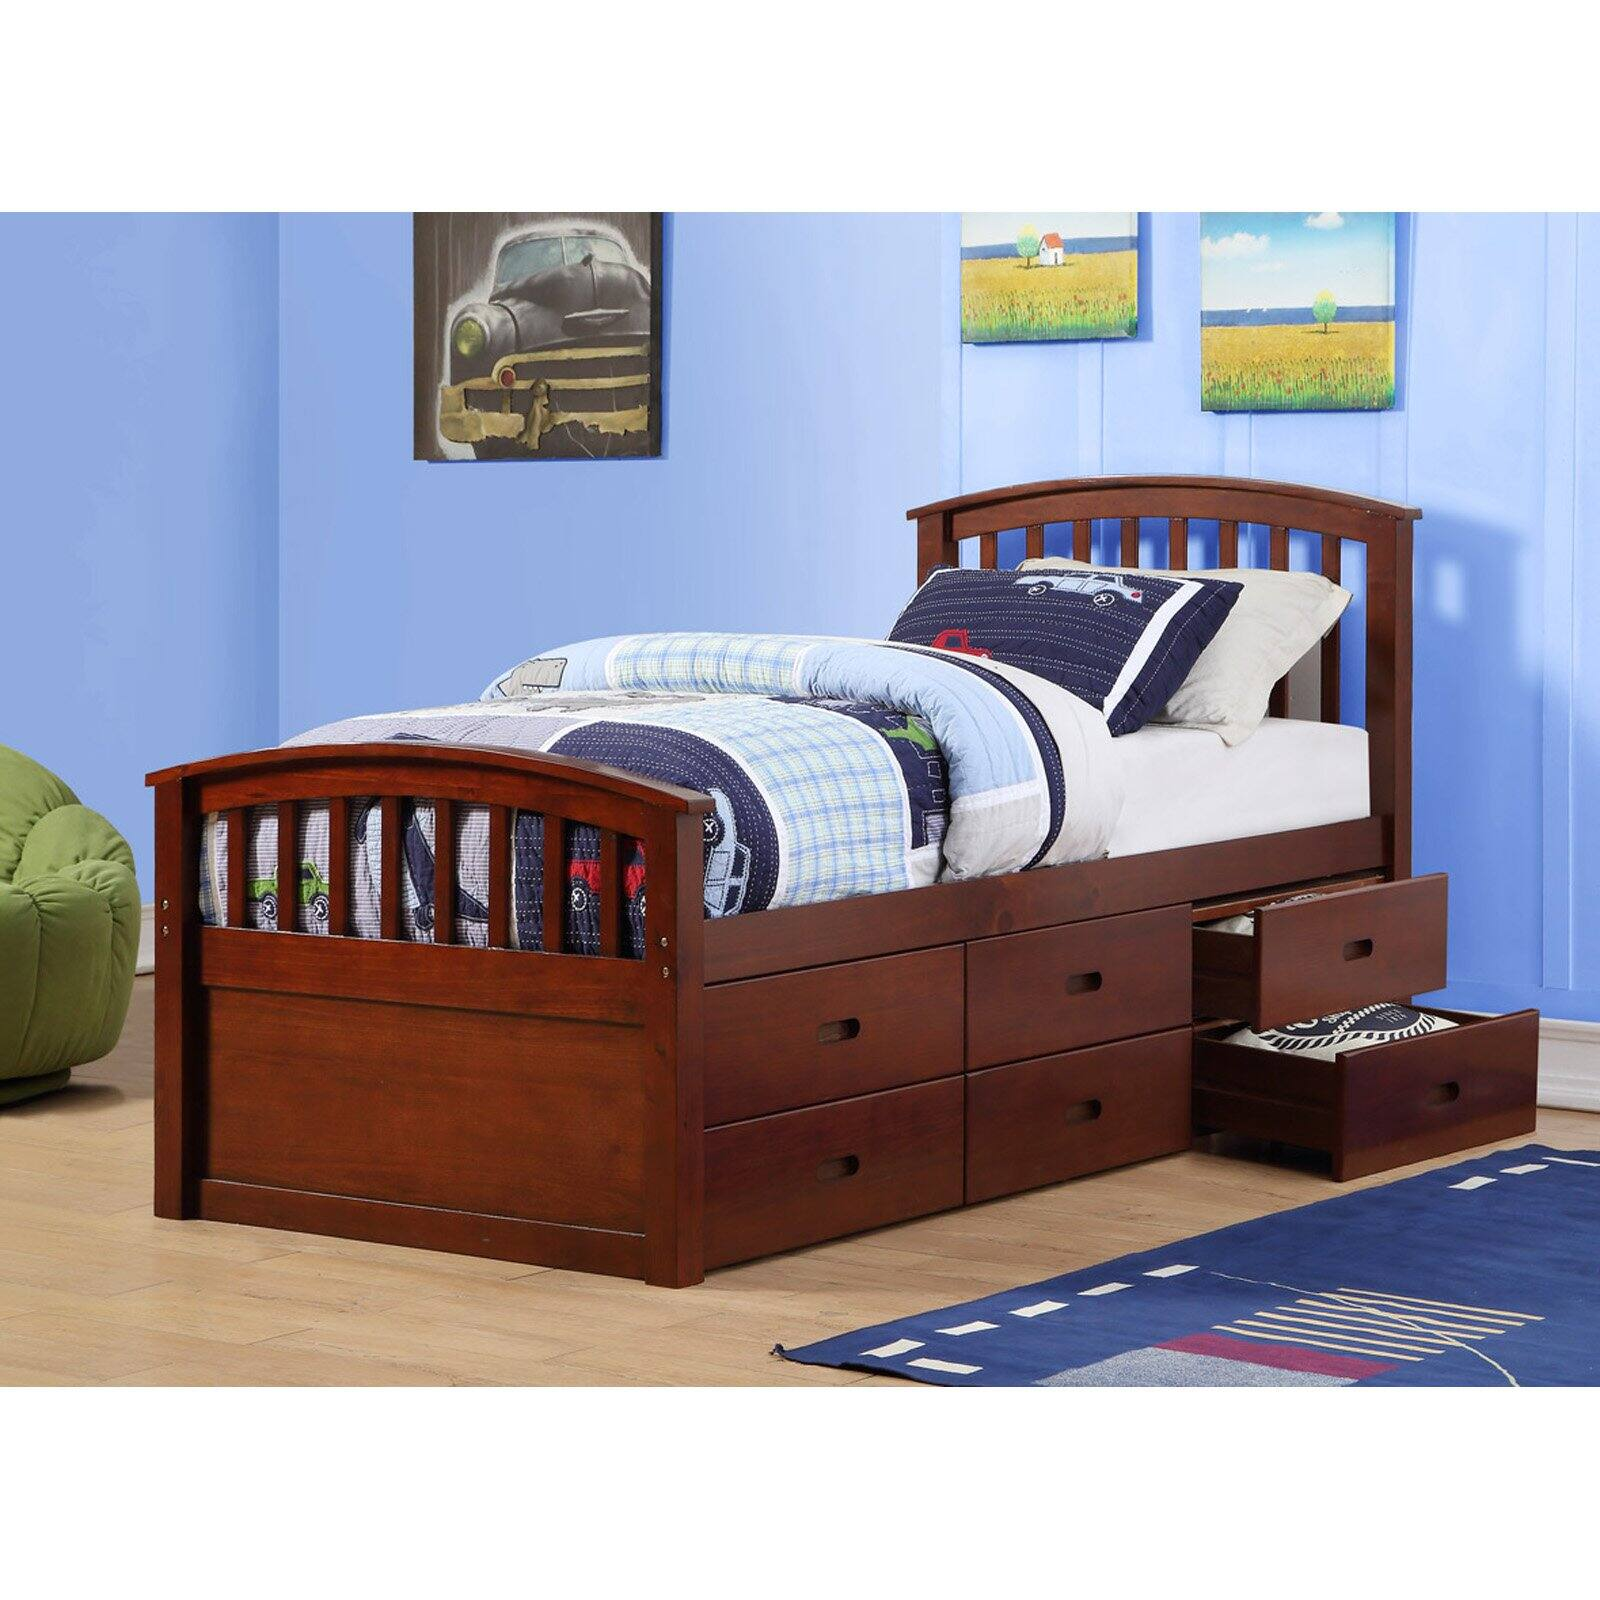 Picture of: Donco Kids Pd 425cp 6 Drawer Storage Bed Twin Size 44 Dark Cappuccino Walmart Com Walmart Com